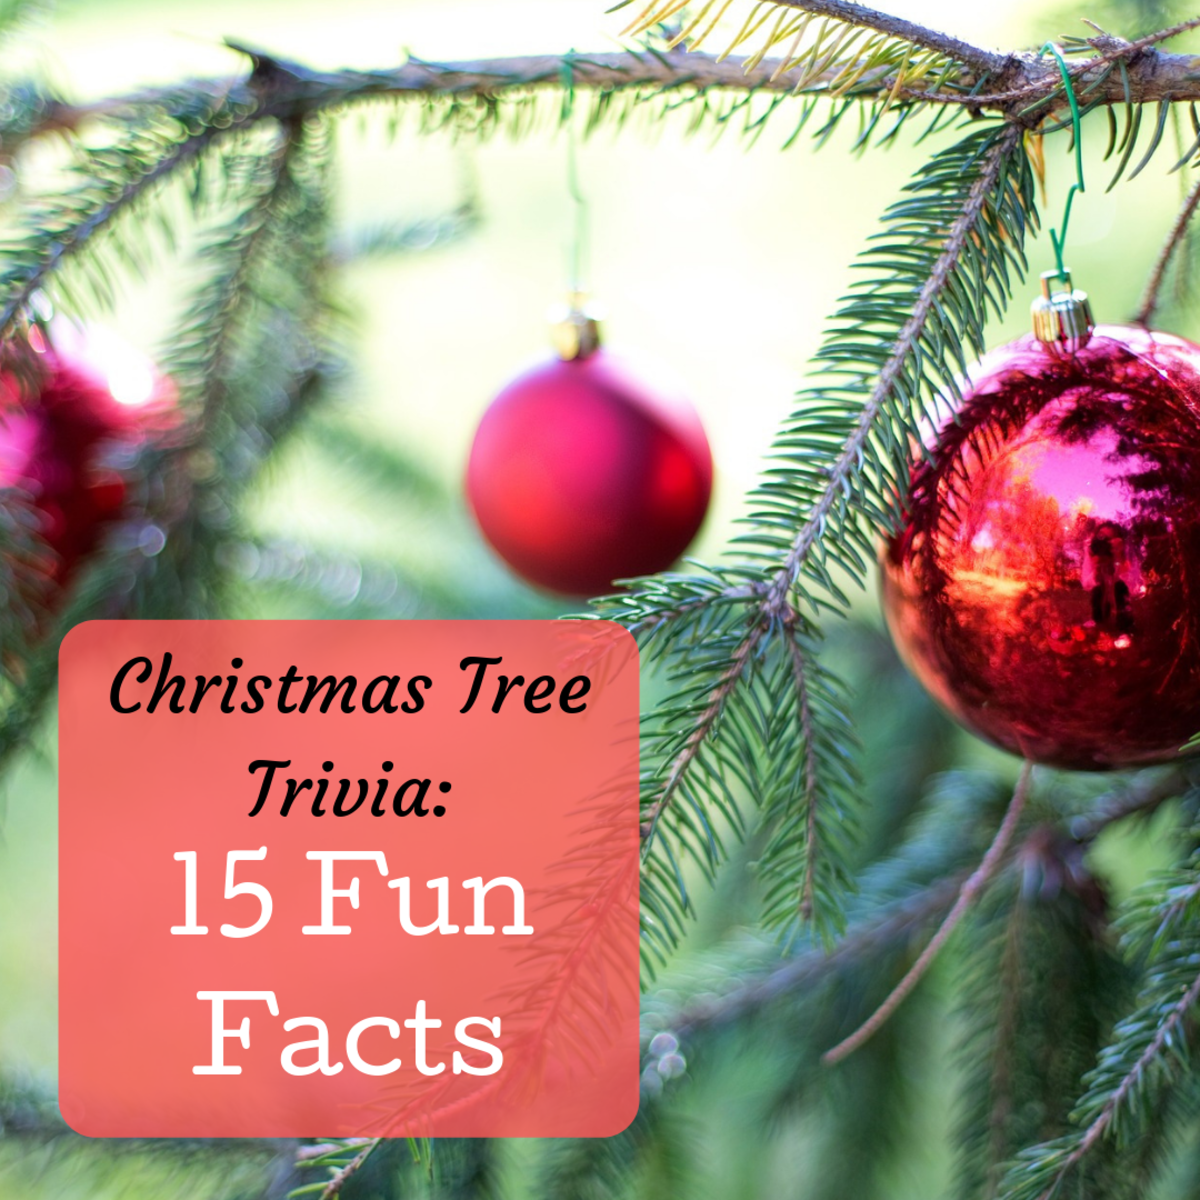 15 Trivia Facts About Christmas Trees | Holidappy